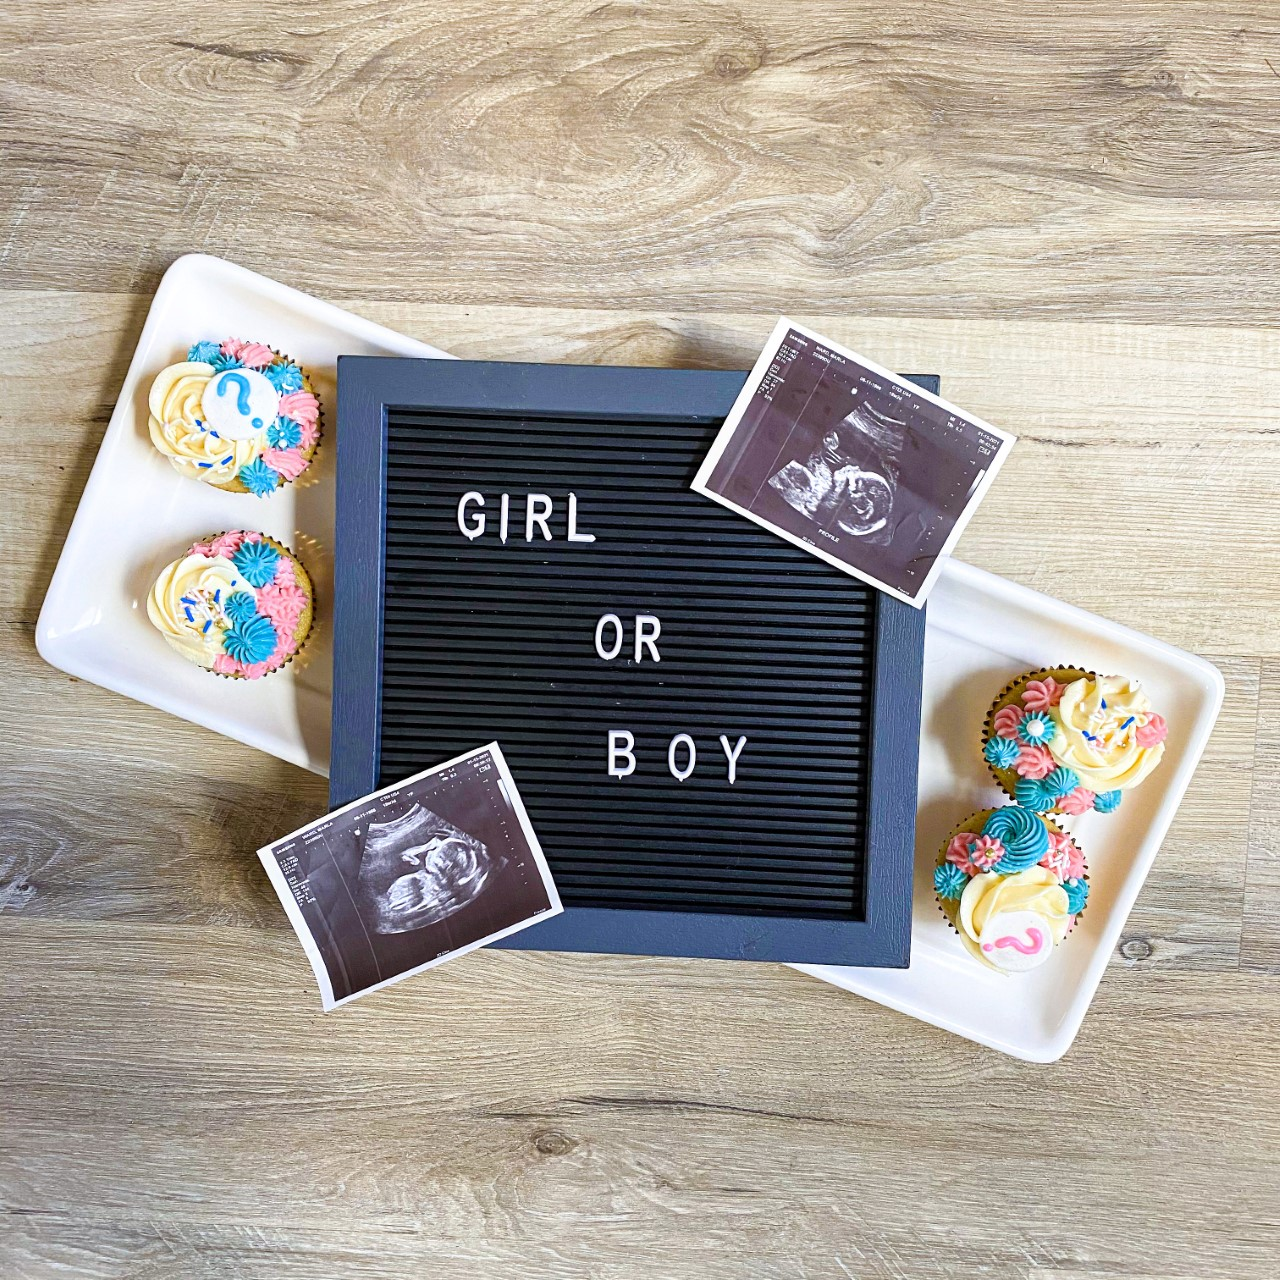 Gender Reveal Idea with Cupcakes